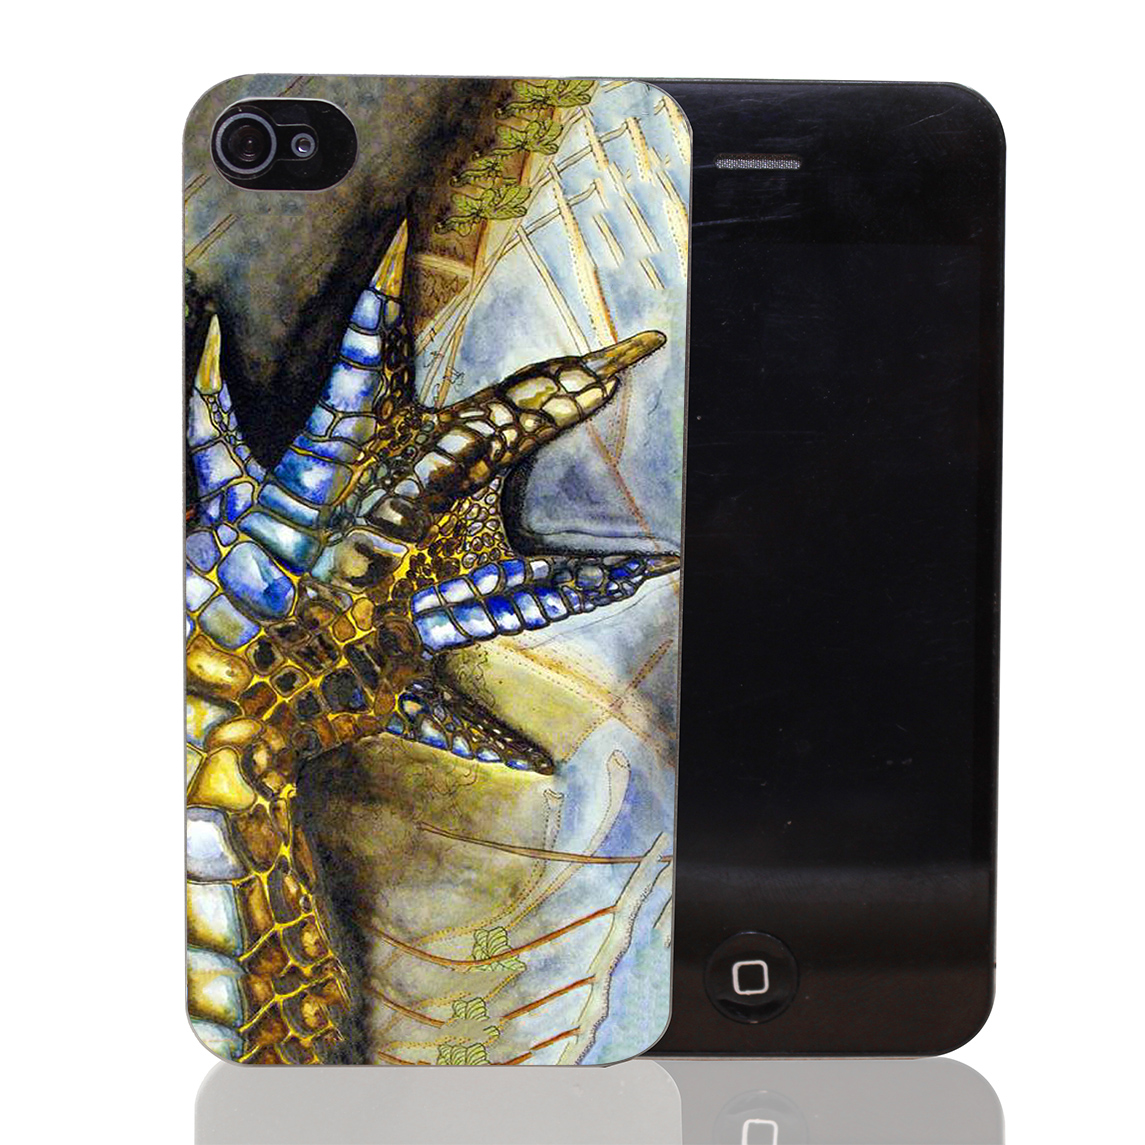 1491CA Gator Hard Transparent Case Cover for iPhone 4 4s 5 5s 5c SE 6 6s Plus Thin Style(China (Mainland))